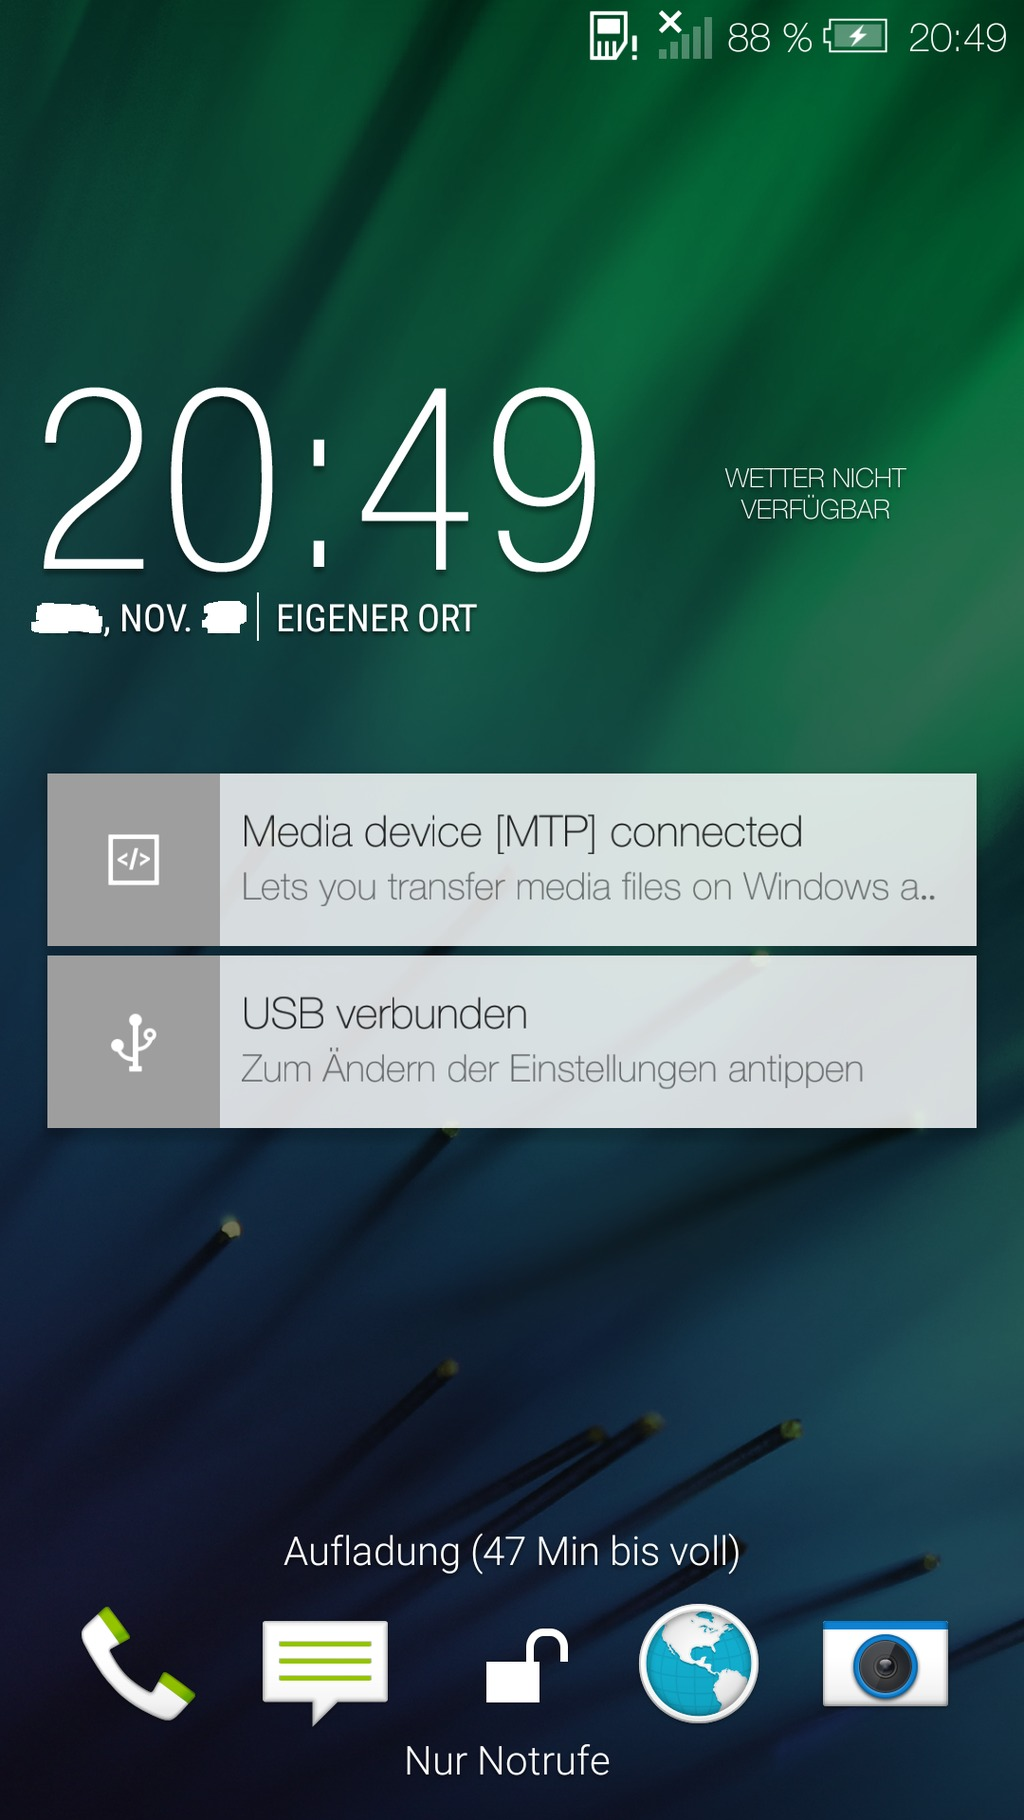 HTC One M8 Android 5.0 + Sense 6 2